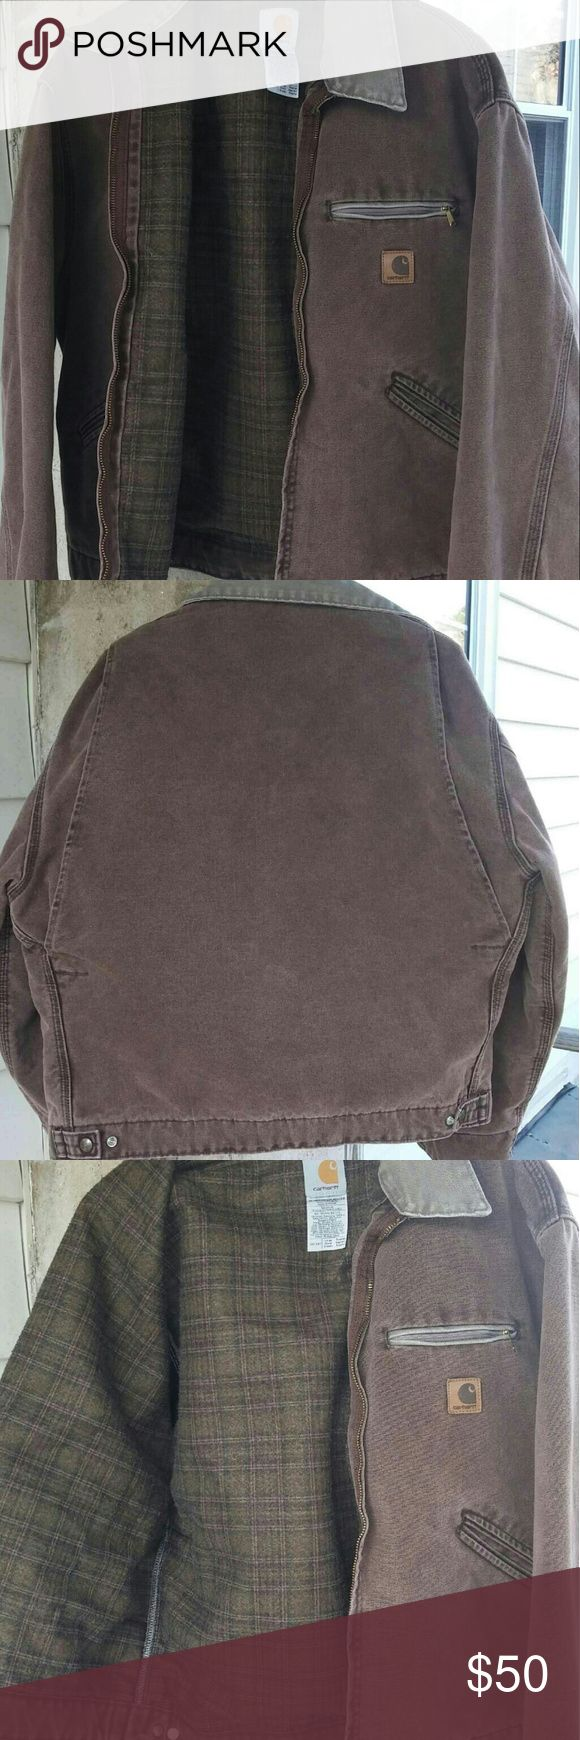 Carhartt Jacket *Authentic* Carhartt Detroit jacket.  Size Large. Brown with green on collar and zipper front pocket.  Inside is a dark green/brown plaid poly flannel lining. My dad's jacket.  Was a gift...not his favorite.  He wore it twice.  Excellent used condition! Carhartt Jackets & Coats